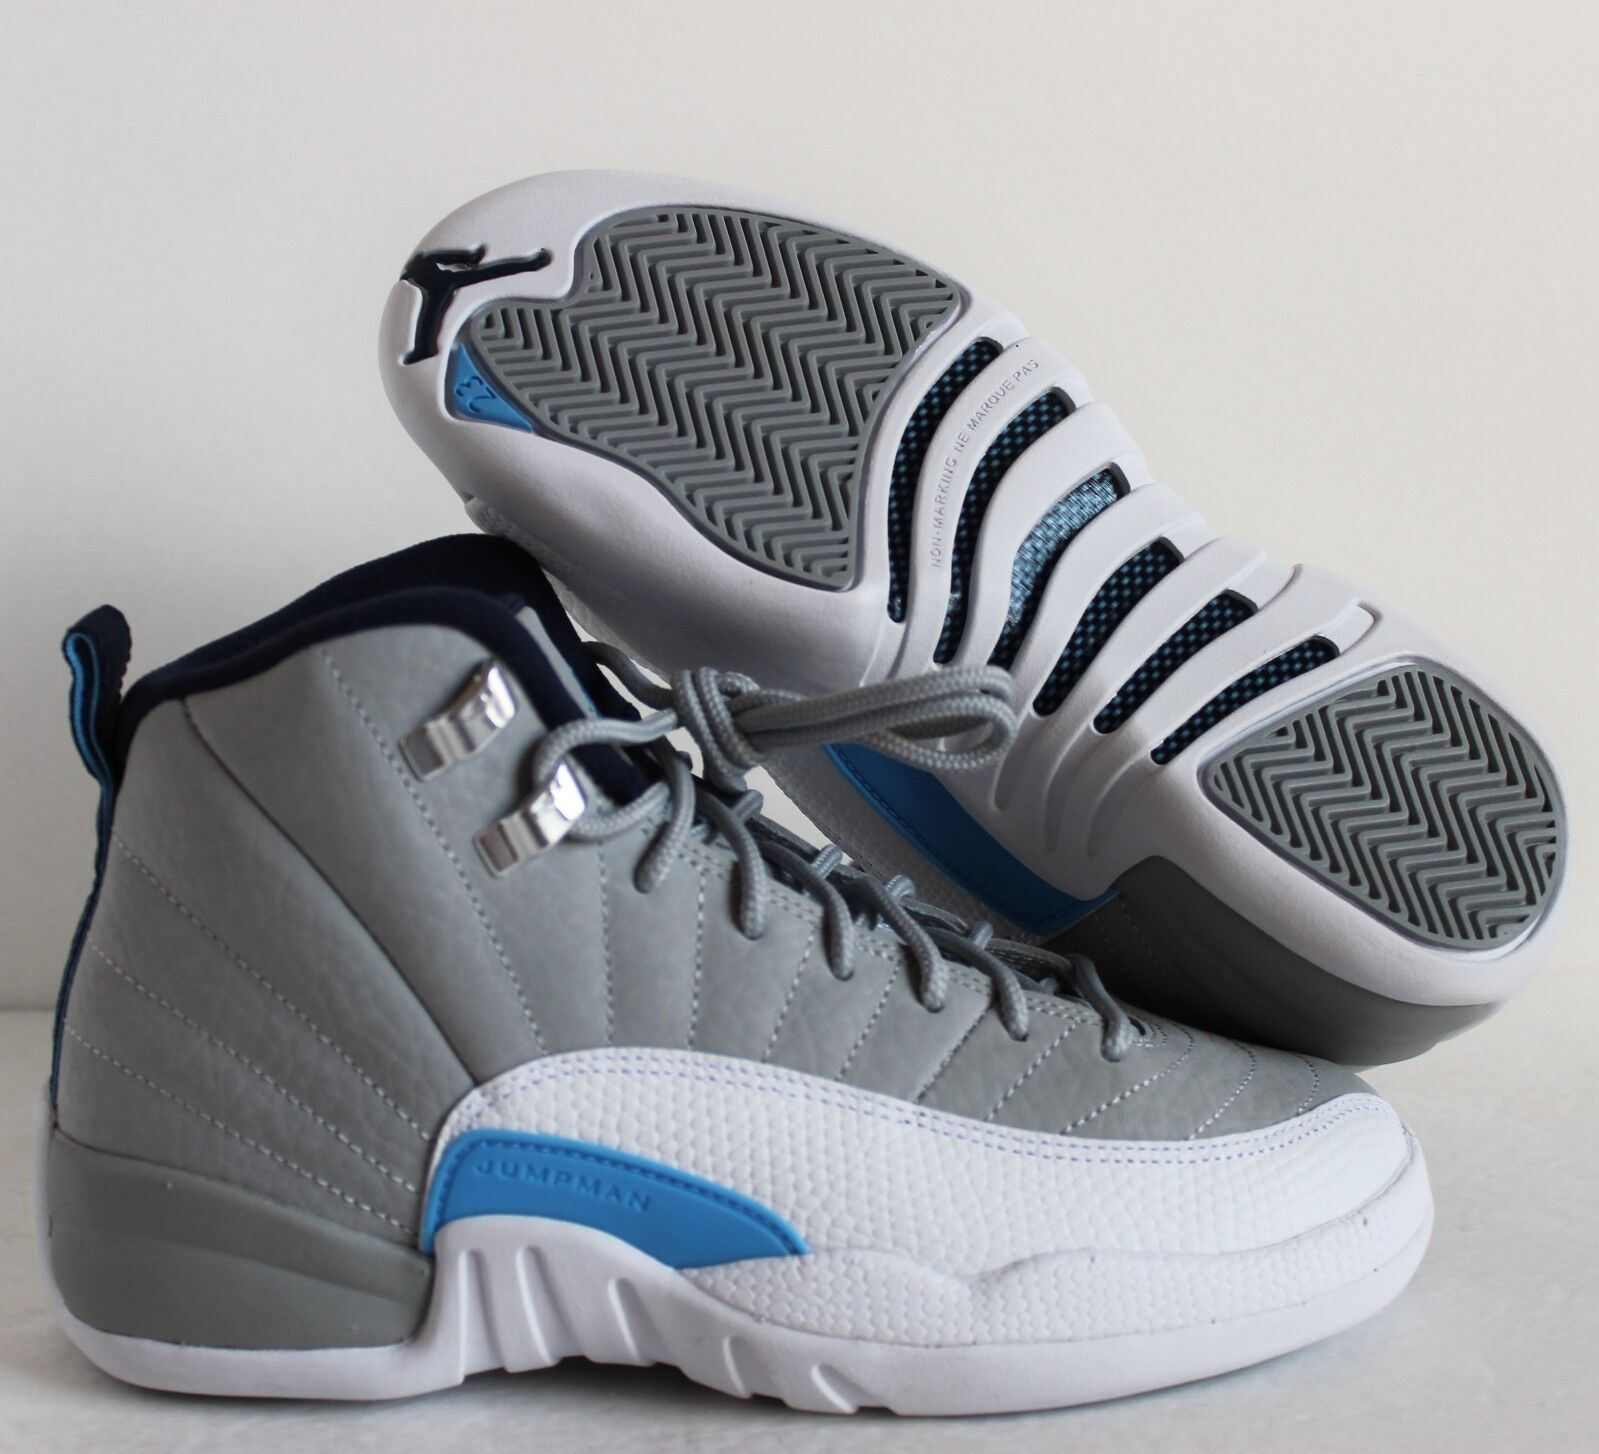 NIKE AIR JORDAN 12 RETRO BG WOLF GREY-UNI BLUE SZ 3.5Y-WOMENS SZ 5 [153265-007]